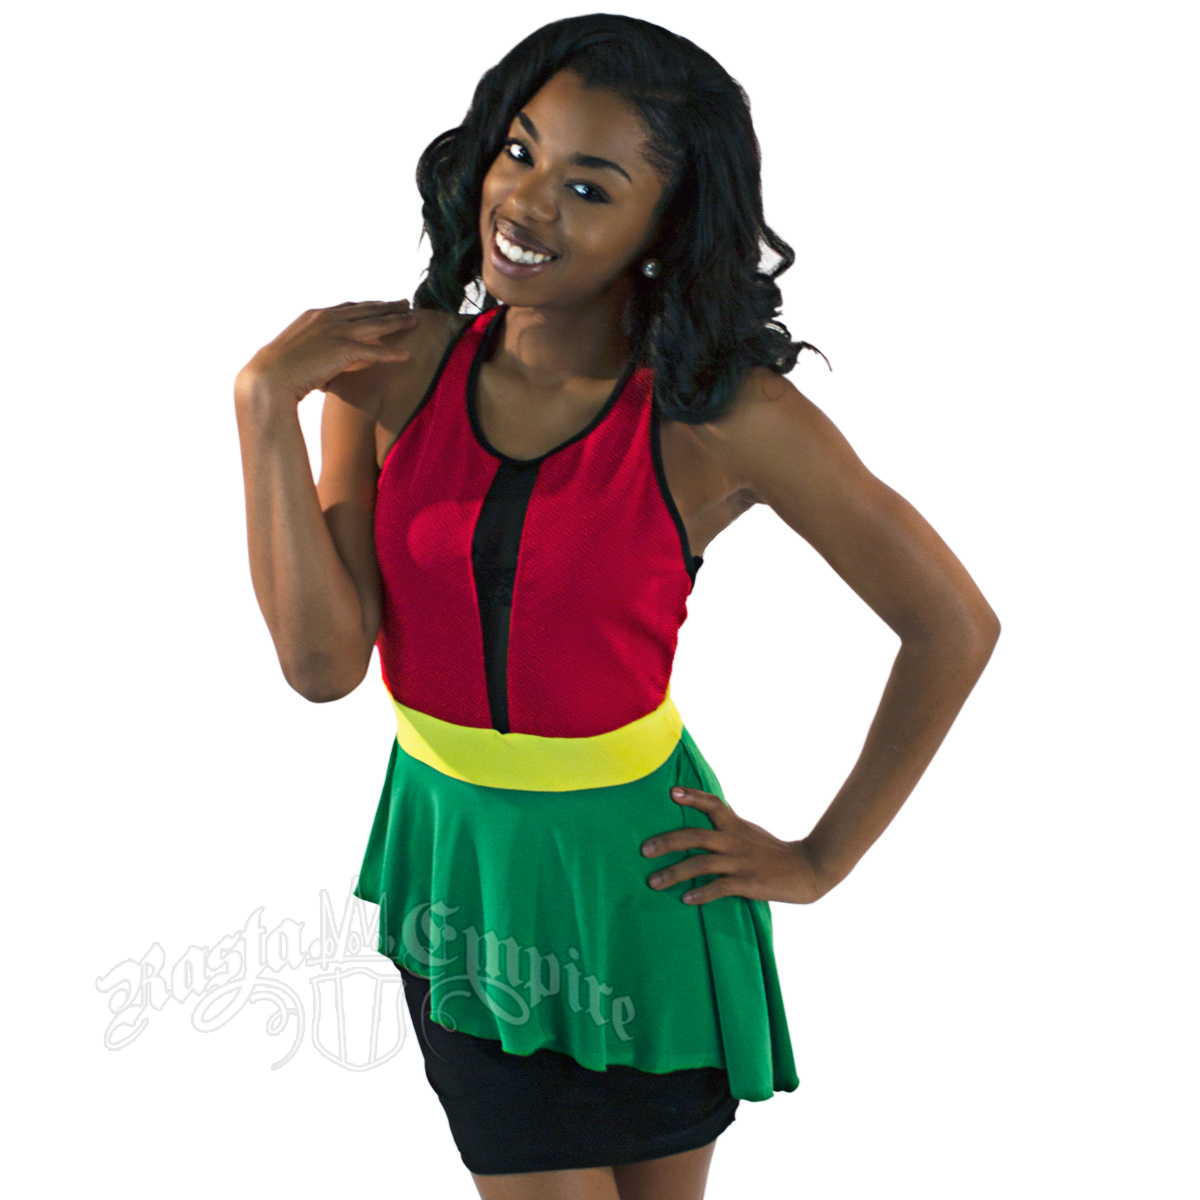 Popular Rastafarian Inspired Style  One Woman39s Style